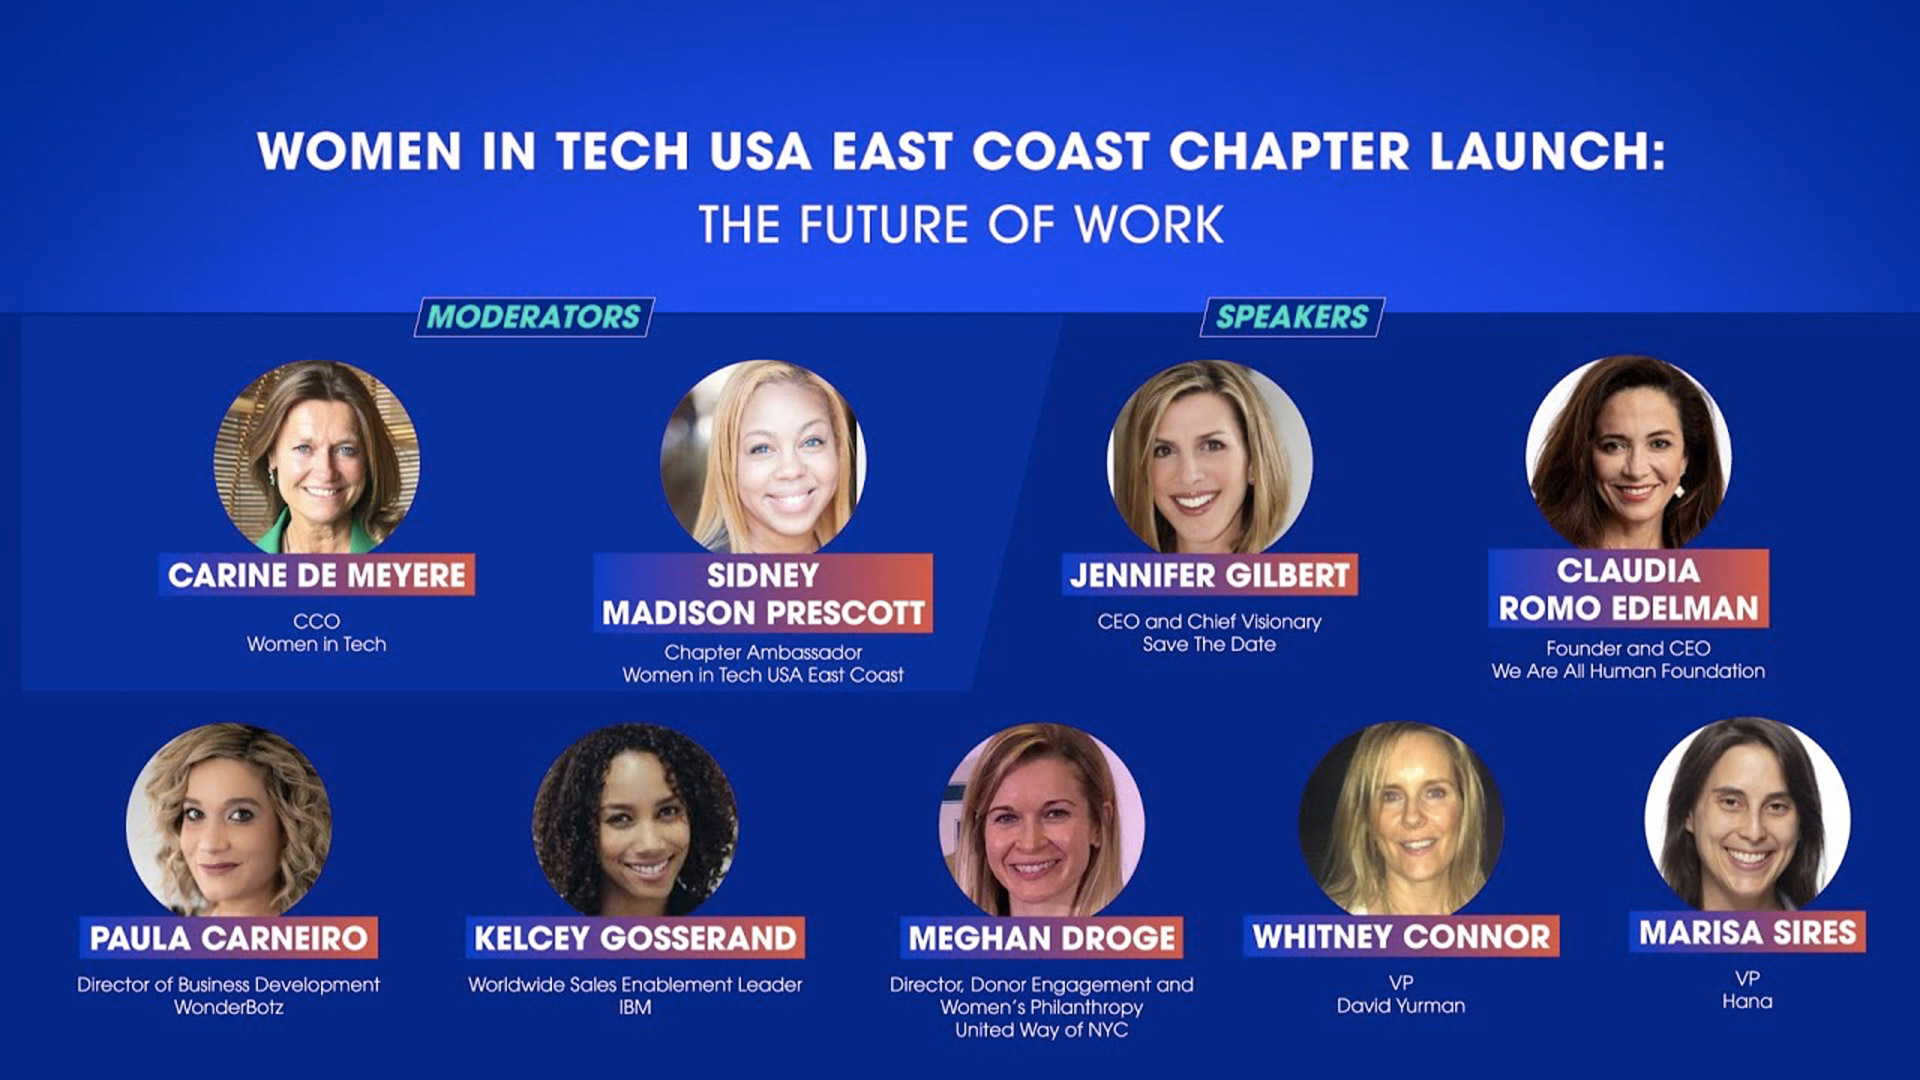 Women in Tech USA East Coast chapter launch: The future of work